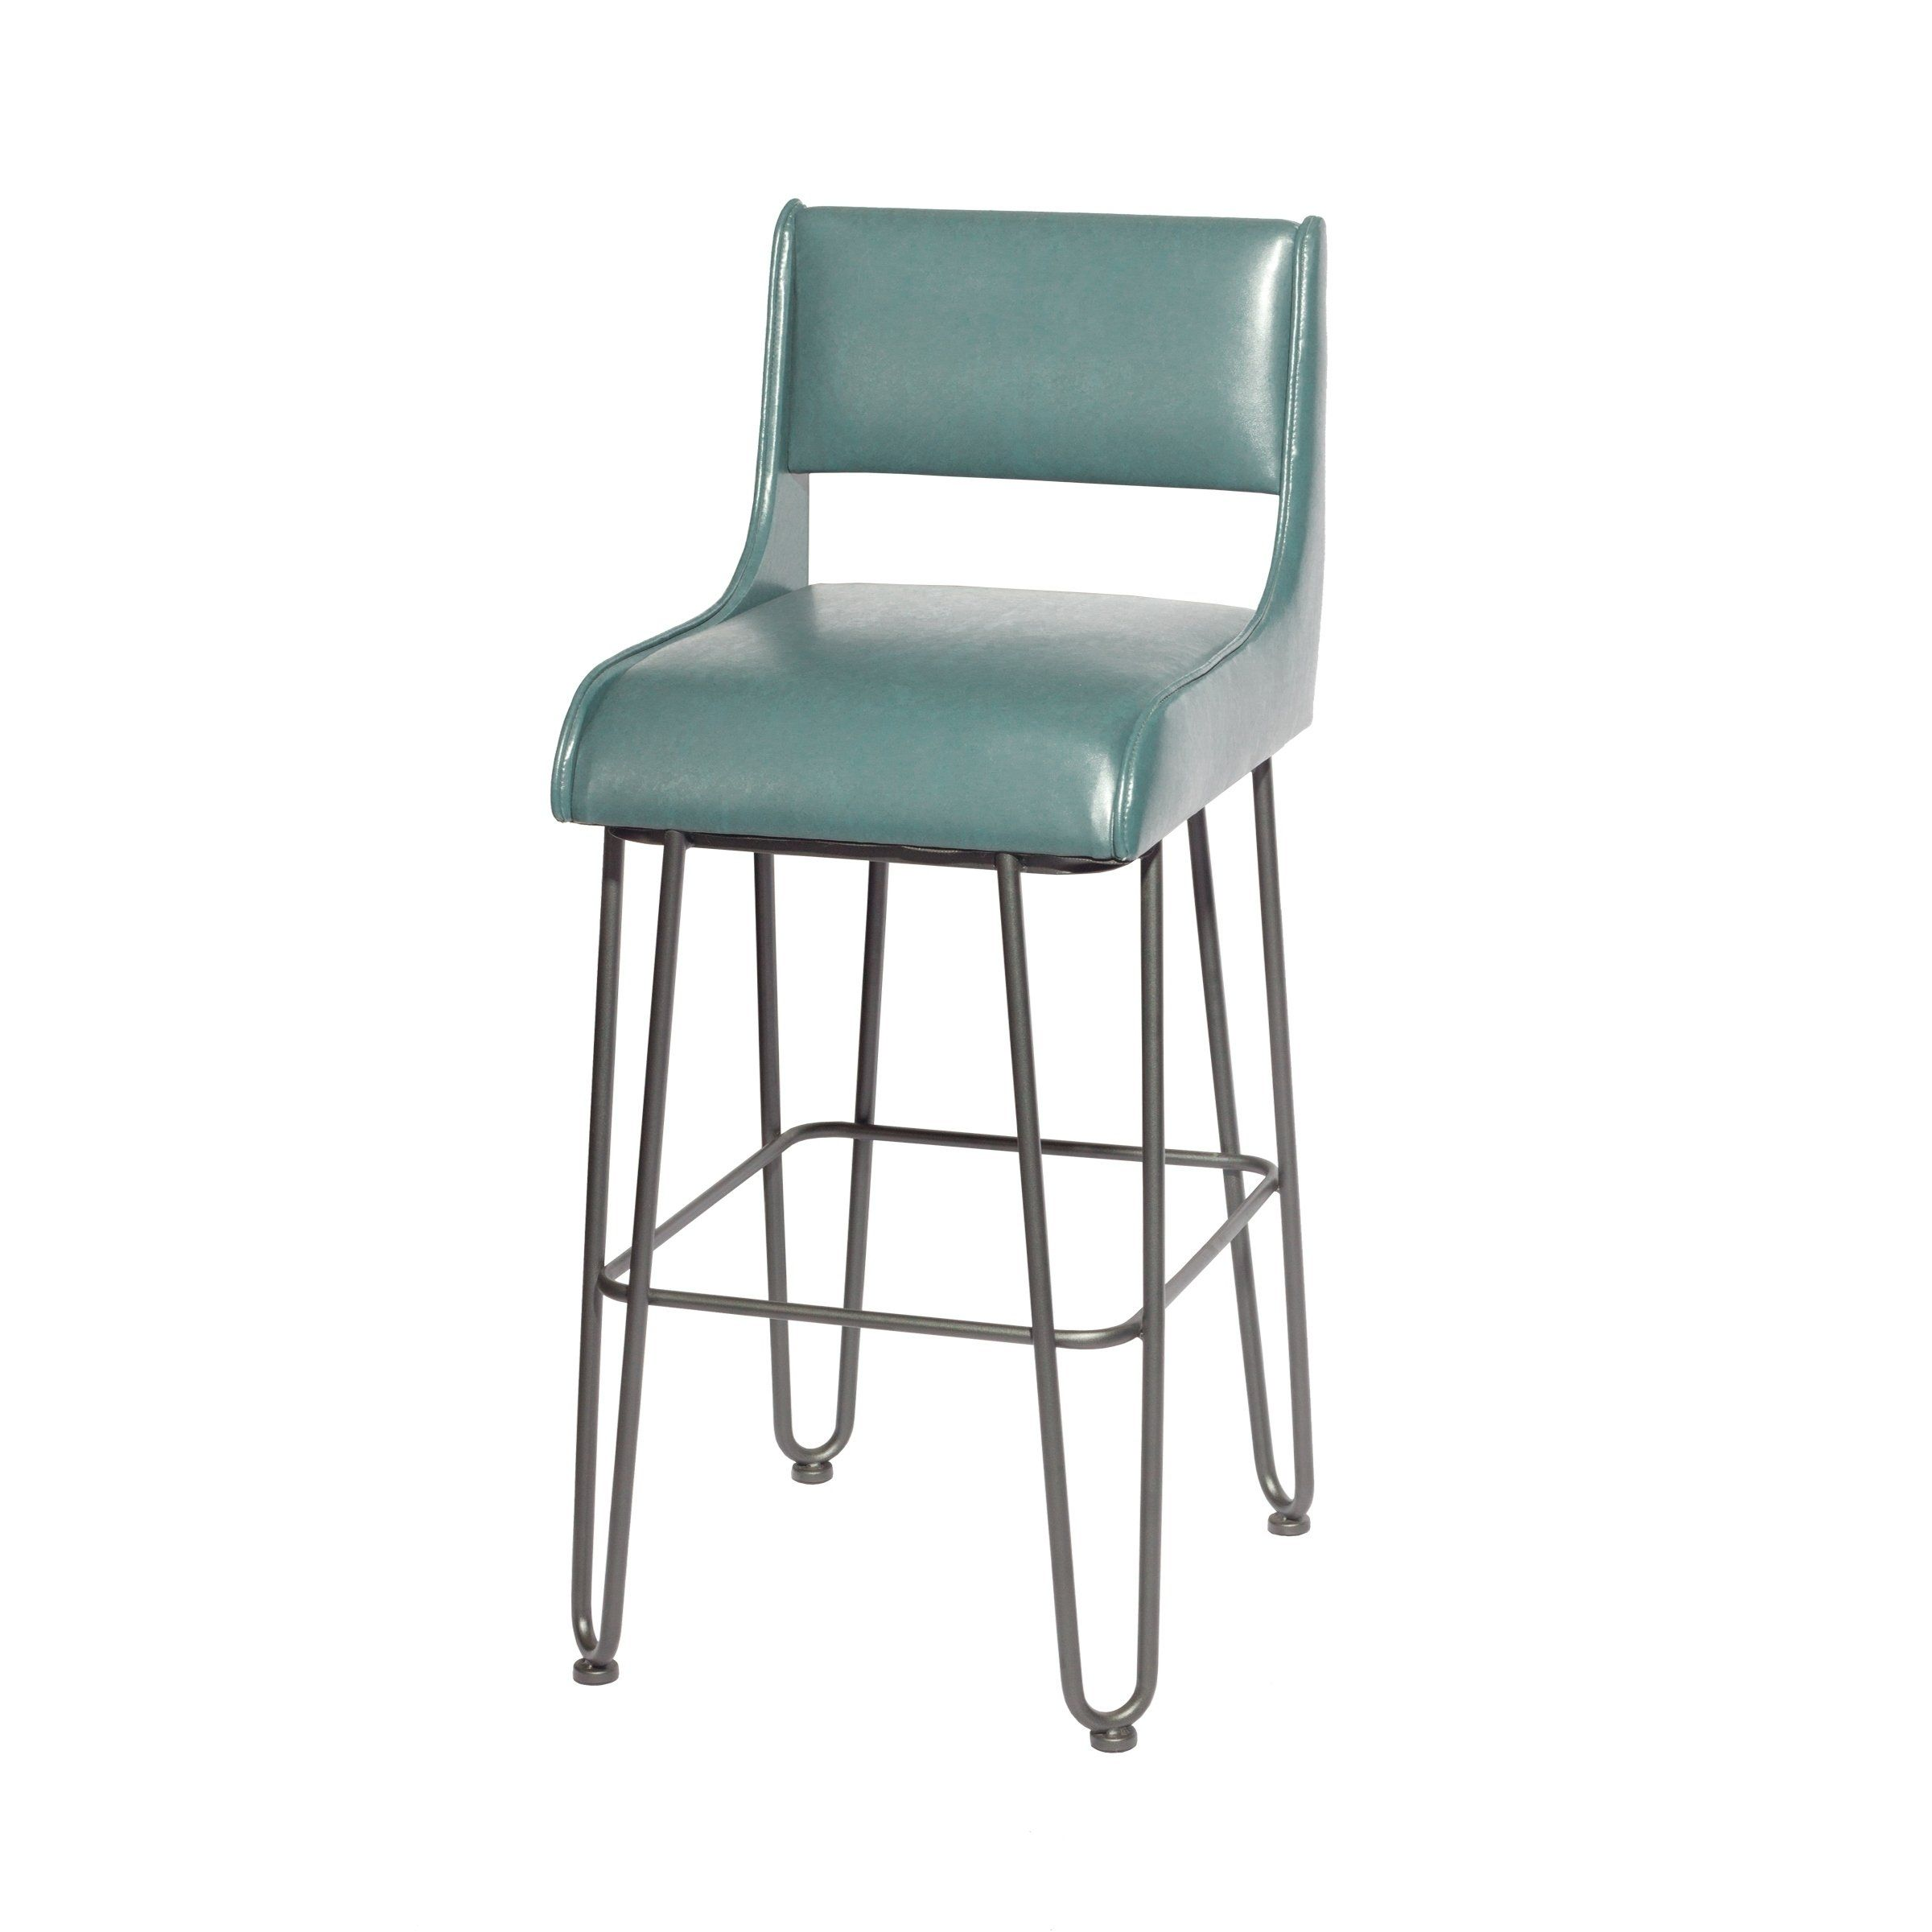 Magnificent Drigger Bar Chair By Greyson Living Bar Height Gray In Dailytribune Chair Design For Home Dailytribuneorg